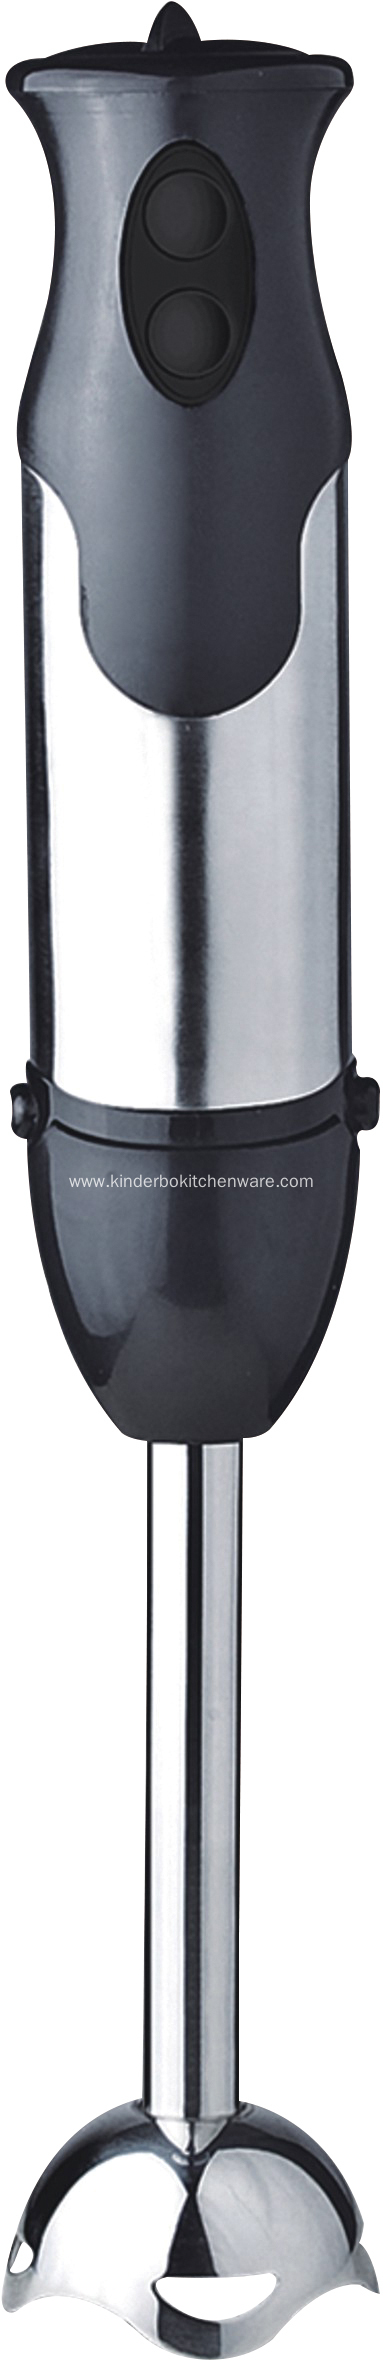 High Quality Kitchen Multifunctional Hand Blender